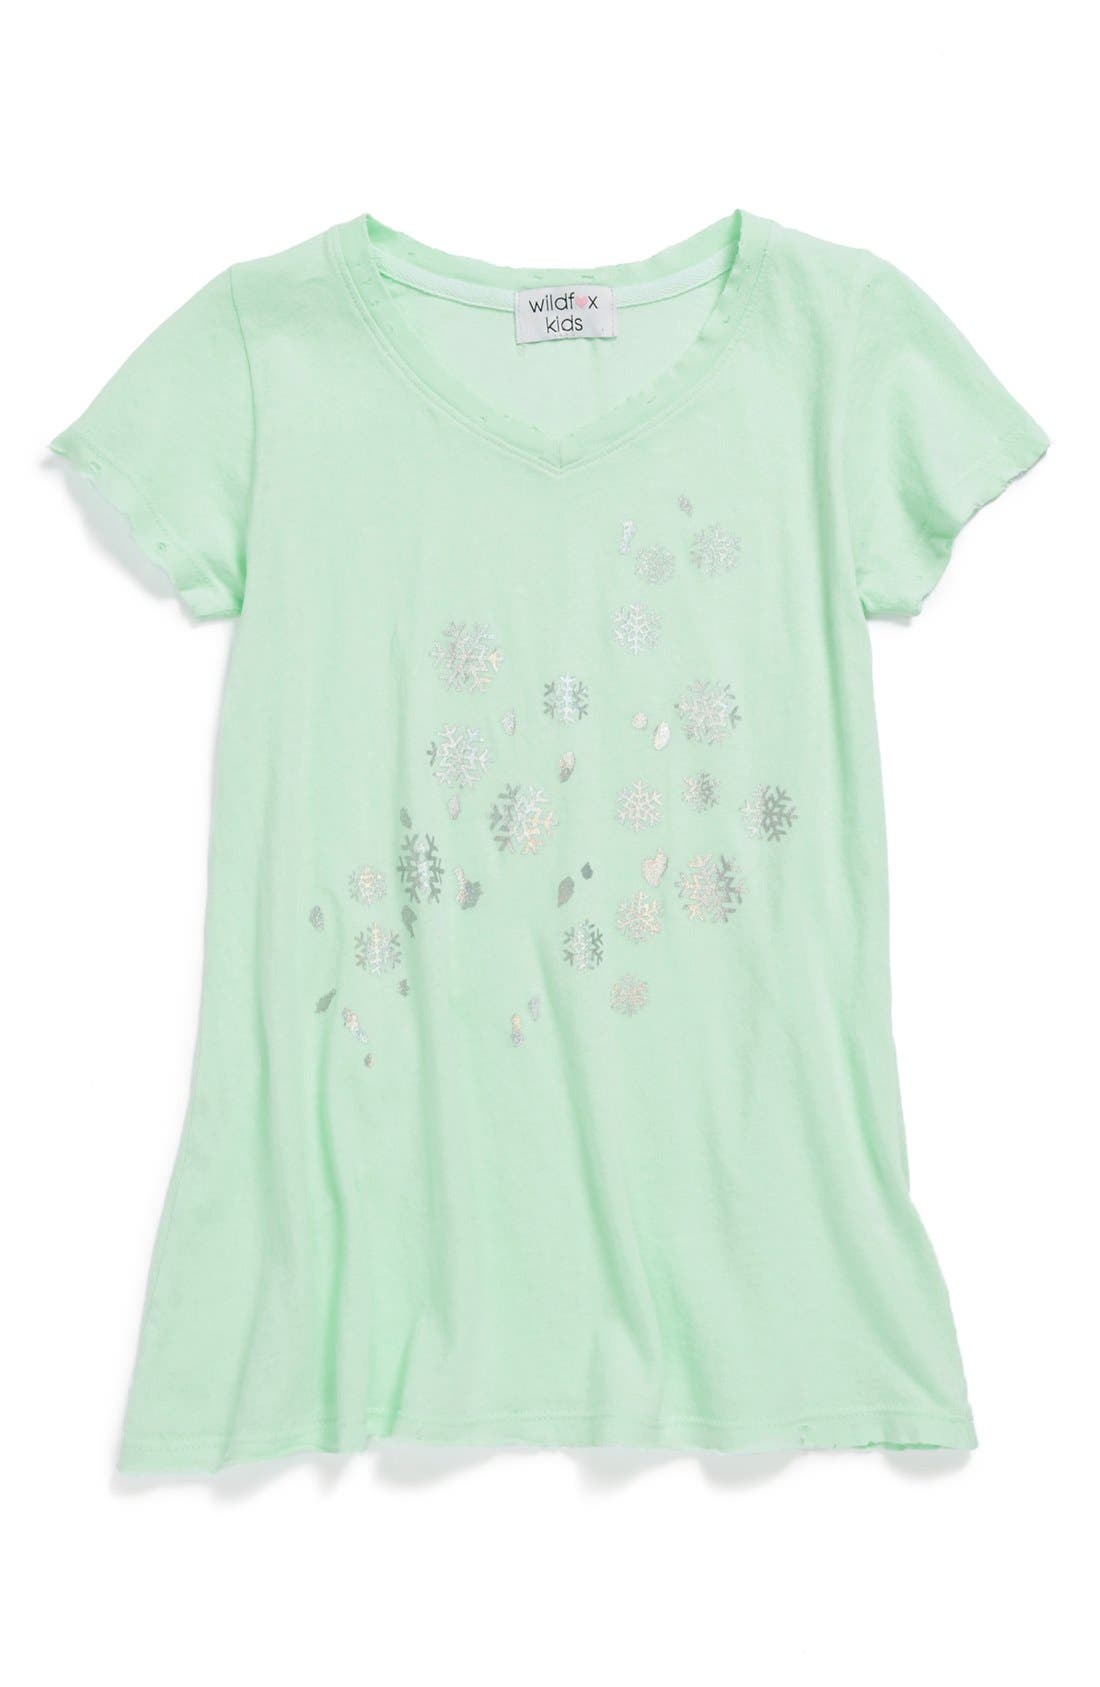 Alternate Image 1 Selected - Wildfox 'Shiny Snowflakes' Tee (Big Girls)